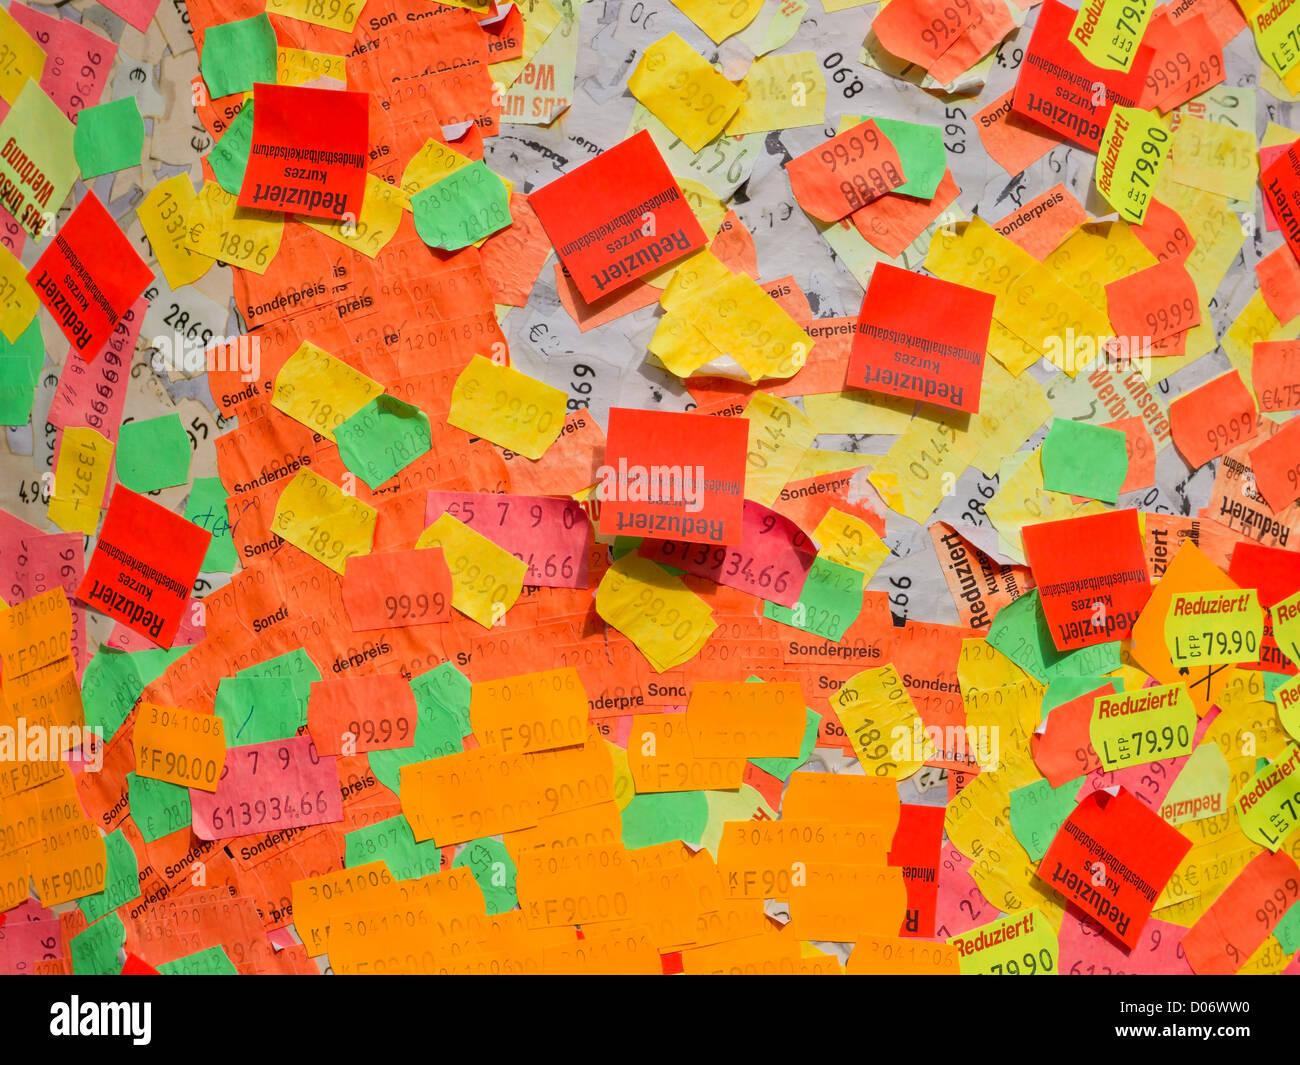 Hundreds of colourful price stickers forming a exhibit of modern art on the outside of a building in Hannover, Germany. - Stock Image